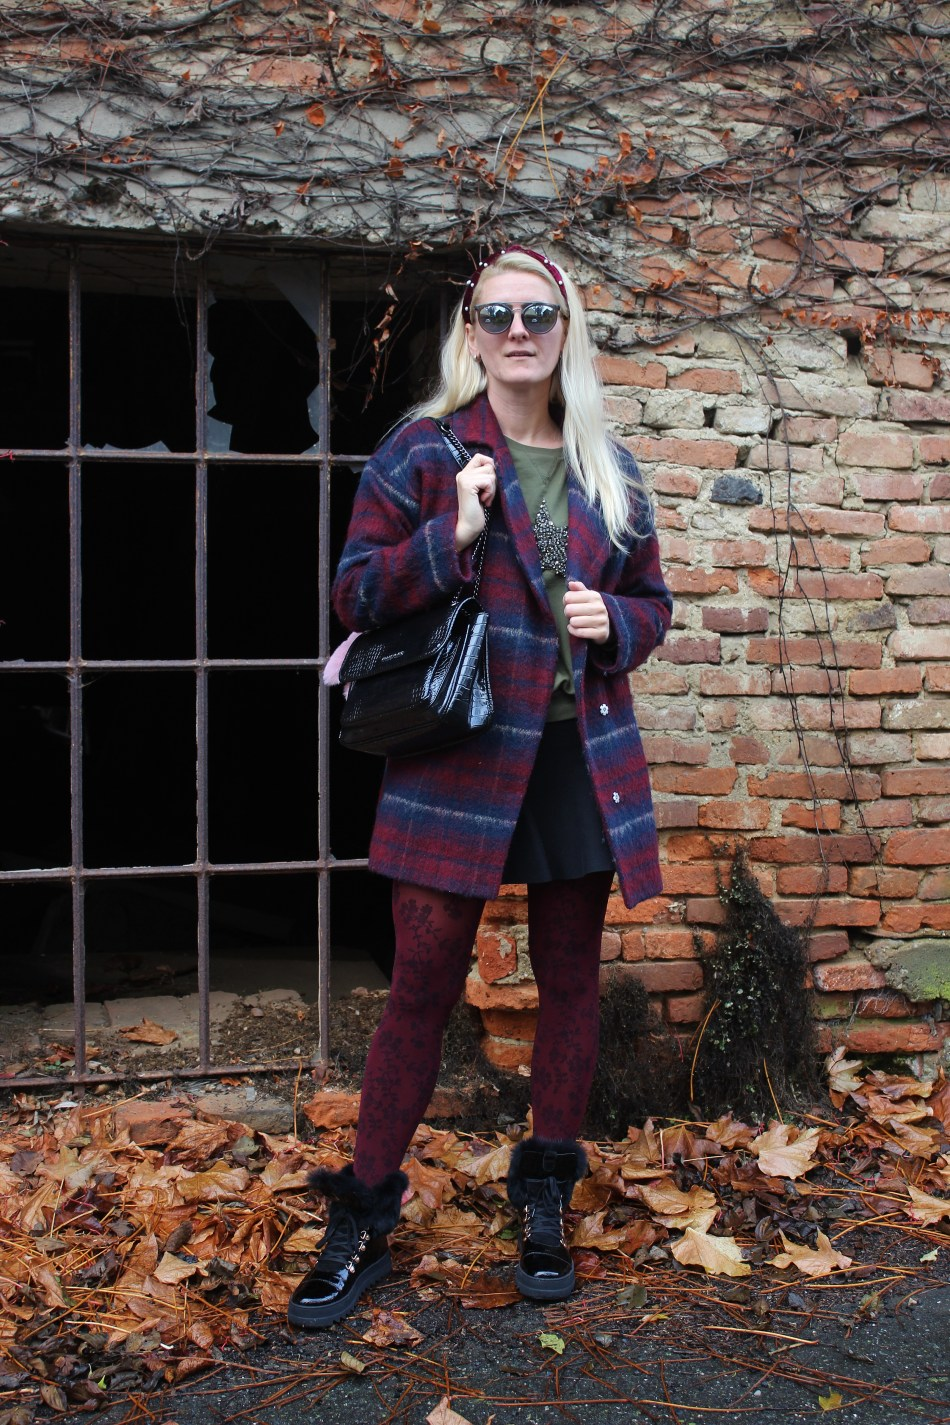 CCC-Shoes-and-Bags-Fur-Patent-Leather-Boots-Karo-Coat-Falloutfit-carrieslifestyle-Tamara-Prutsch